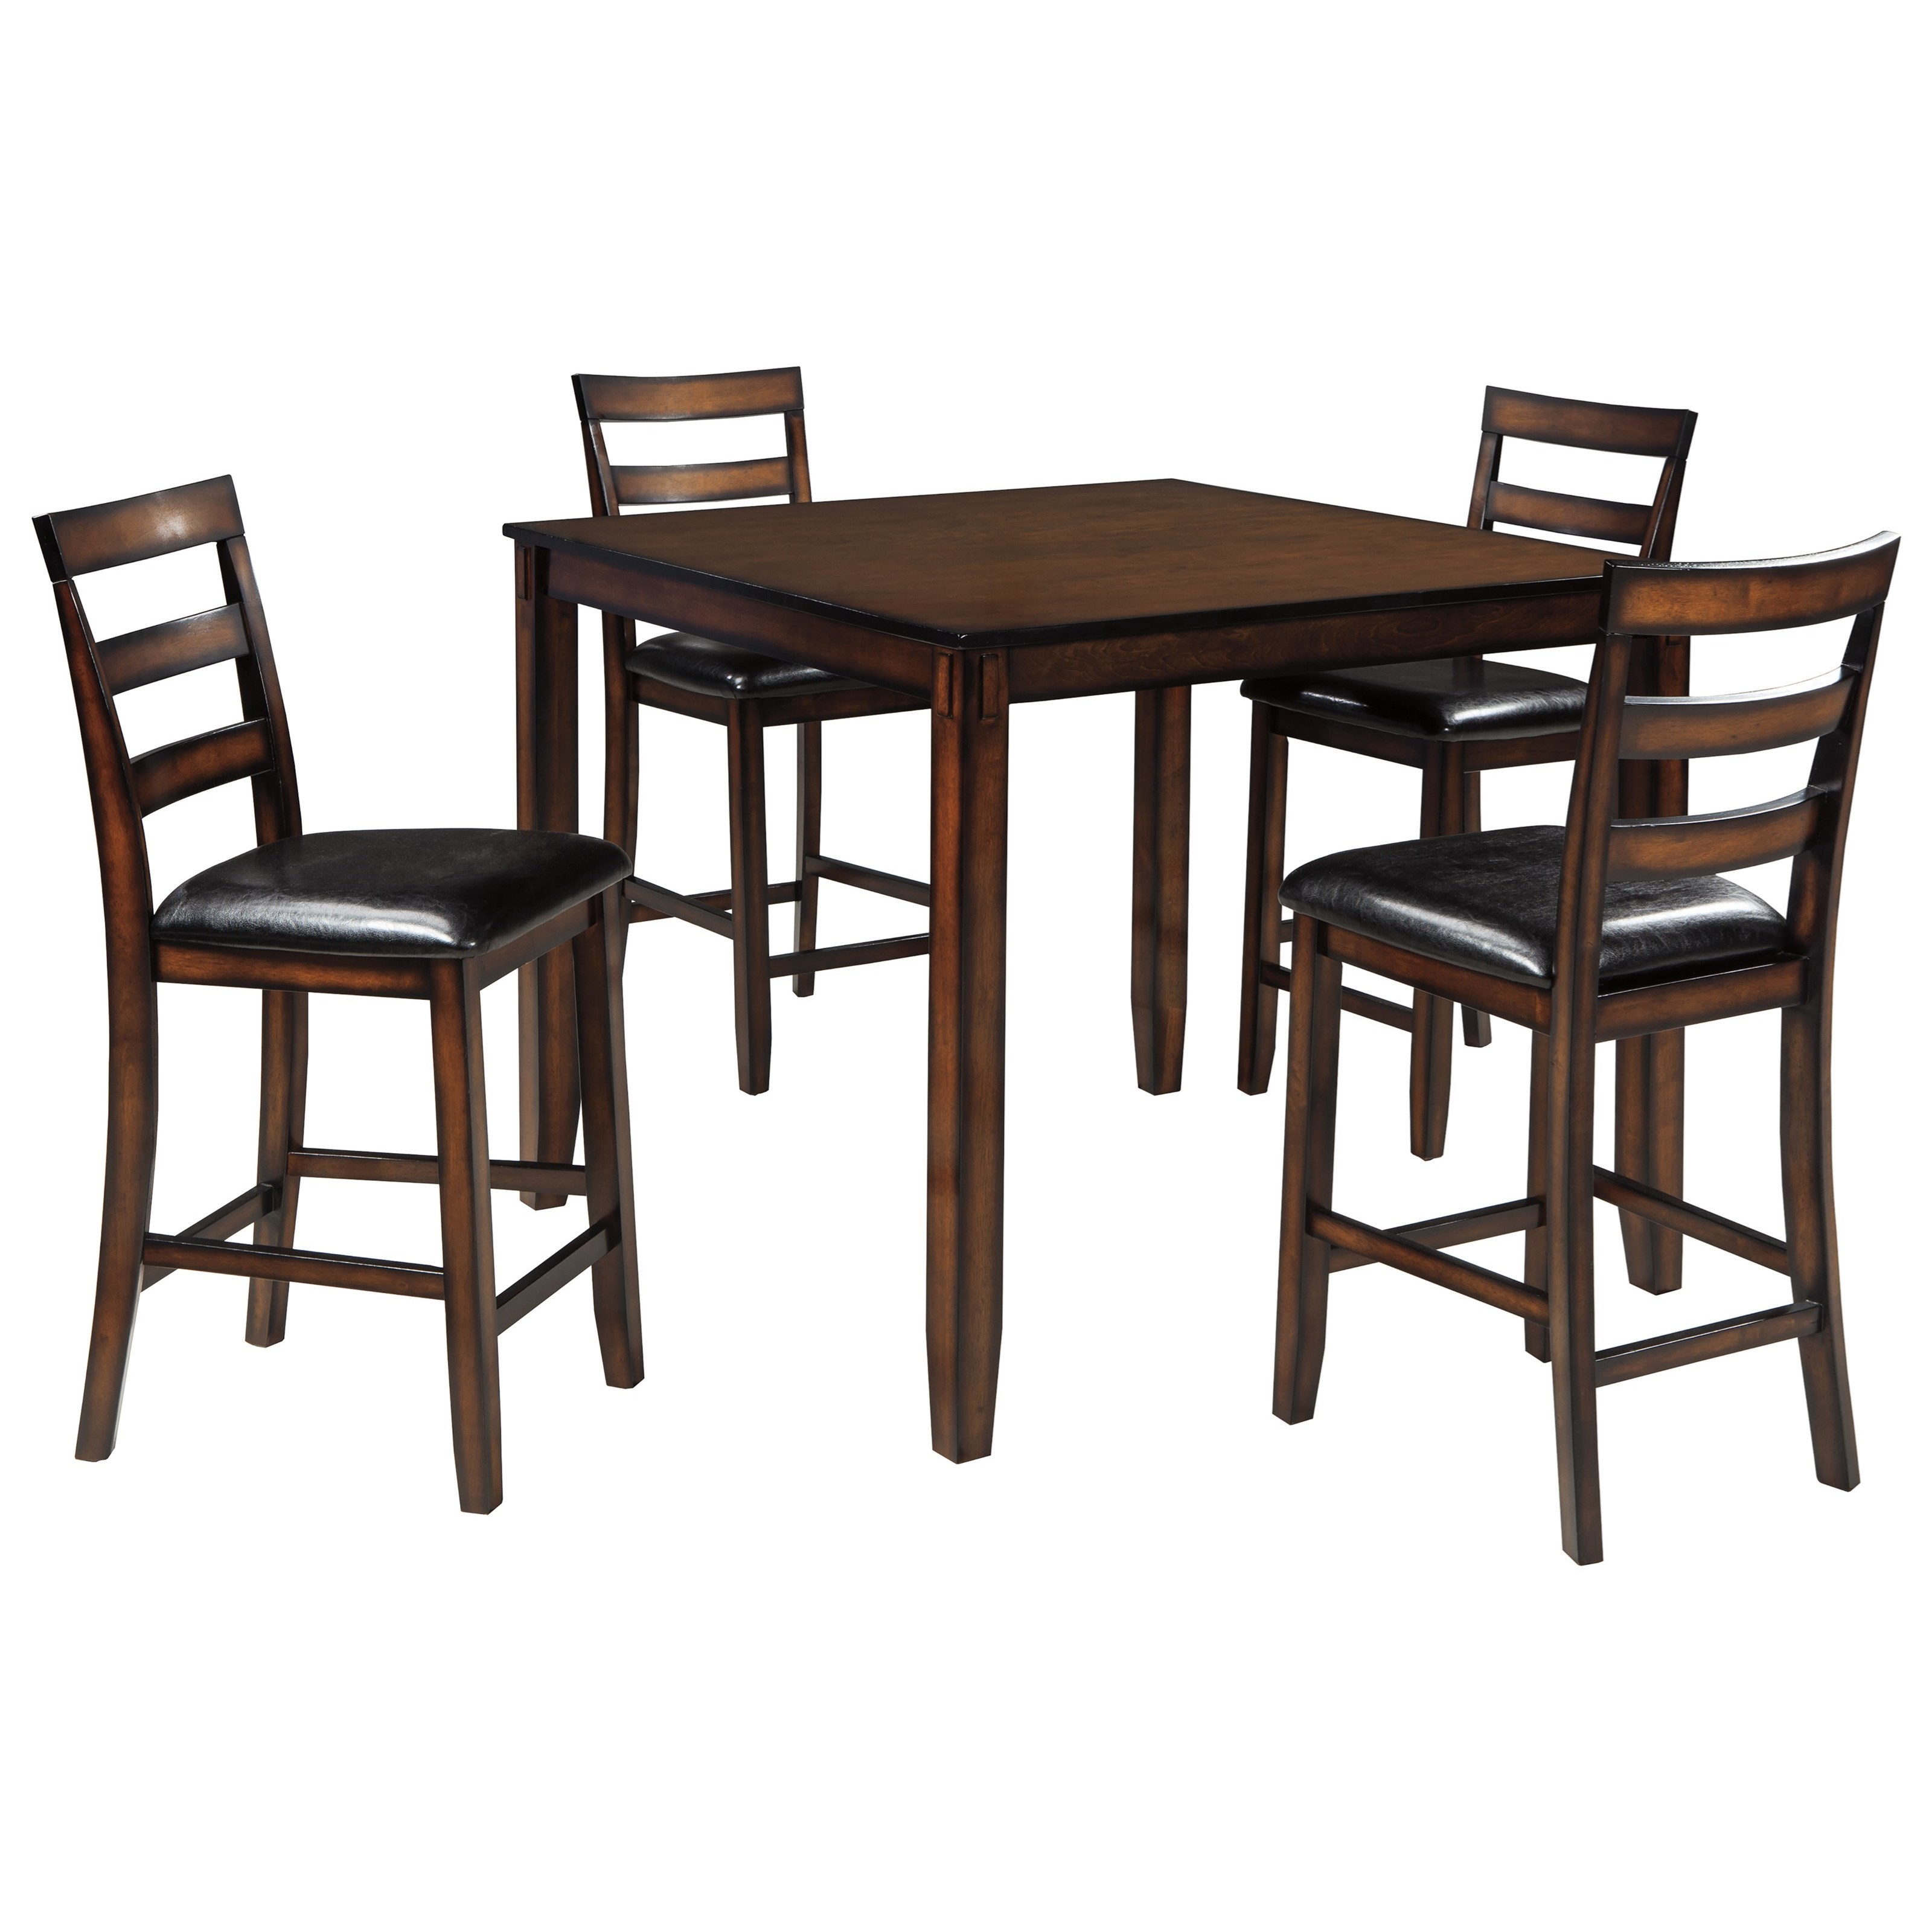 Coviar 5-Piece Dining Room Counter Table Set by Ashley (Signature Design) at Johnny Janosik